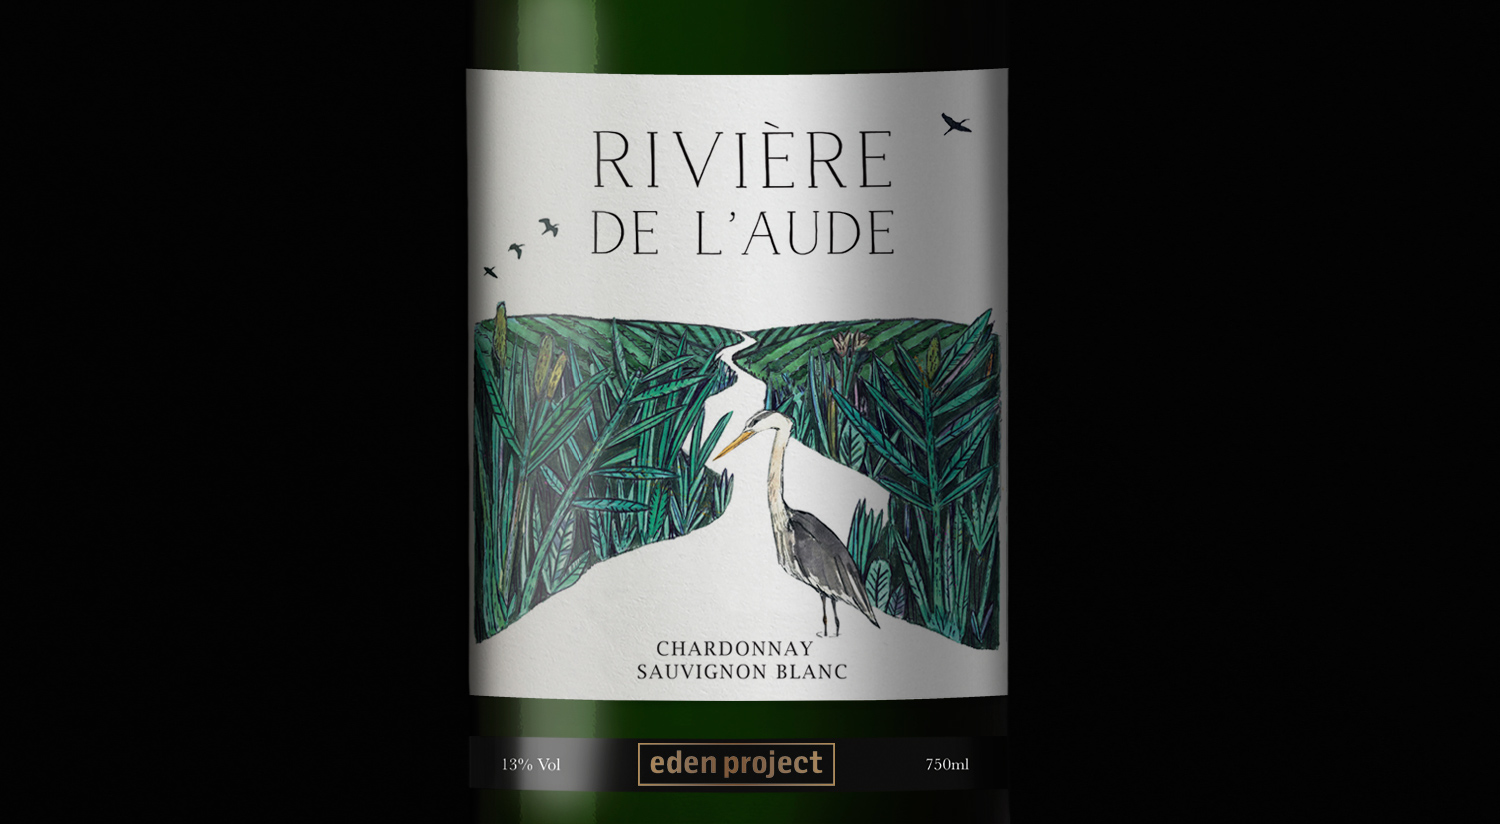 Eden Project wine label design white